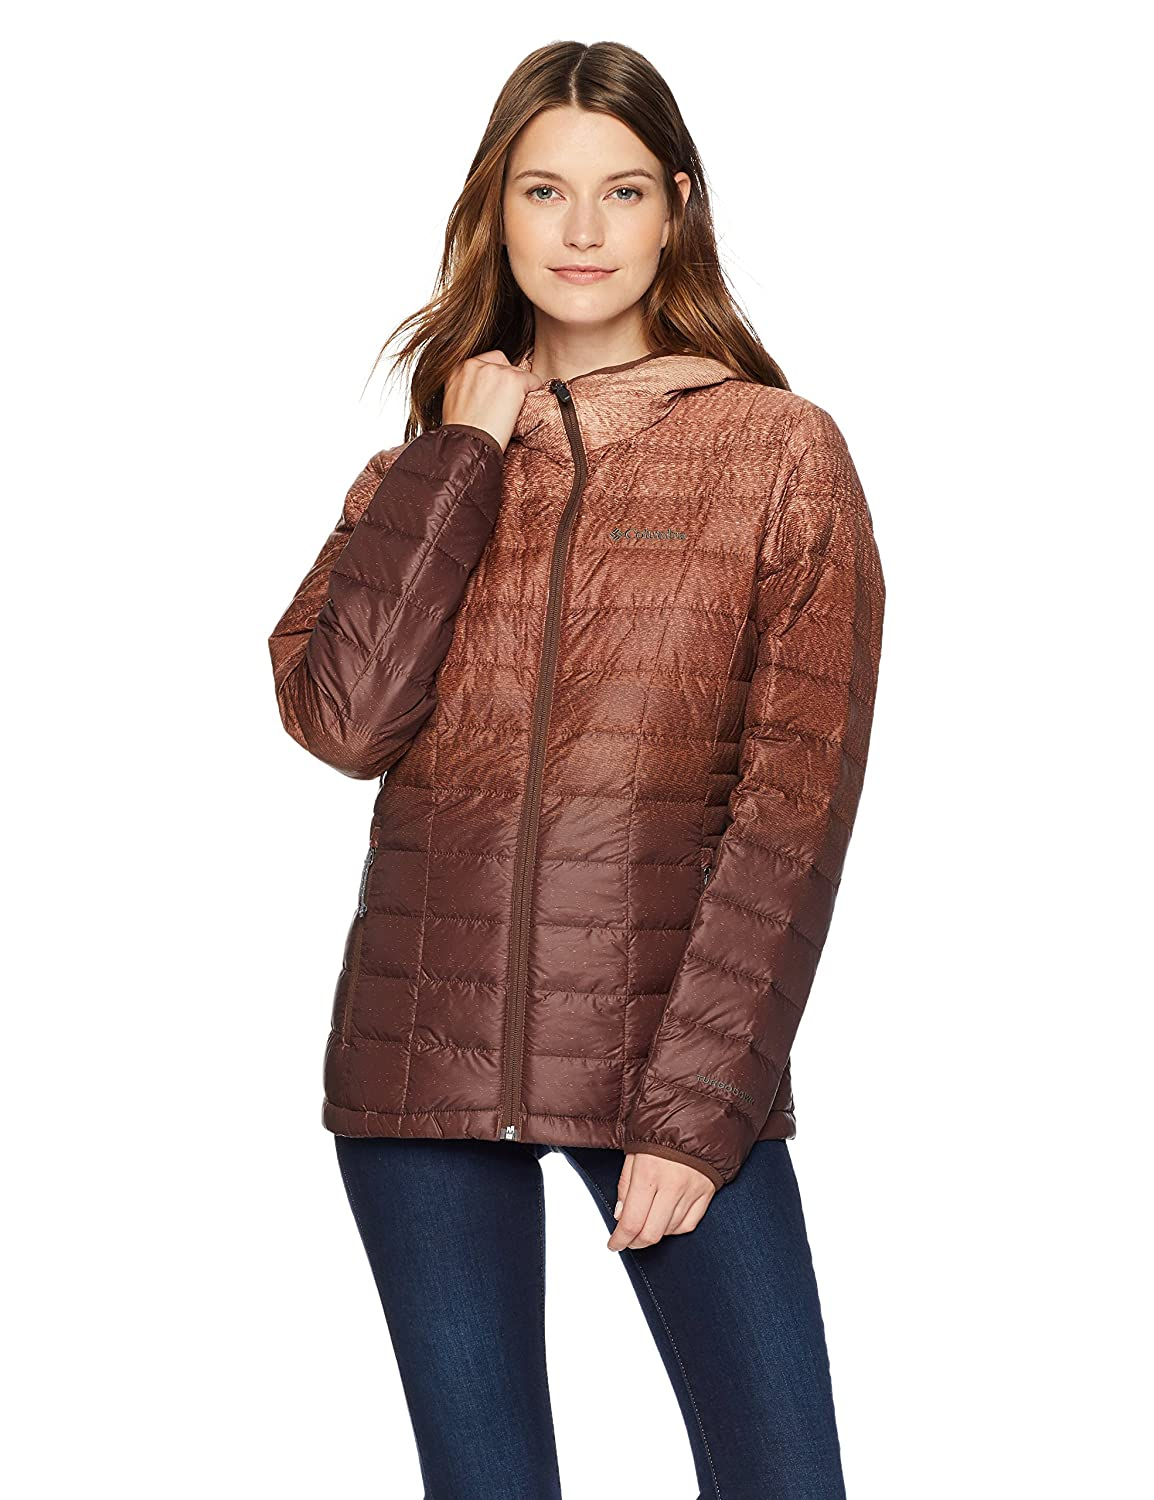 Bright Copper Gradient Print Columbia Women's Voodoo Falls 590 TurboDown Hooded Jacket, Thermal Puffer